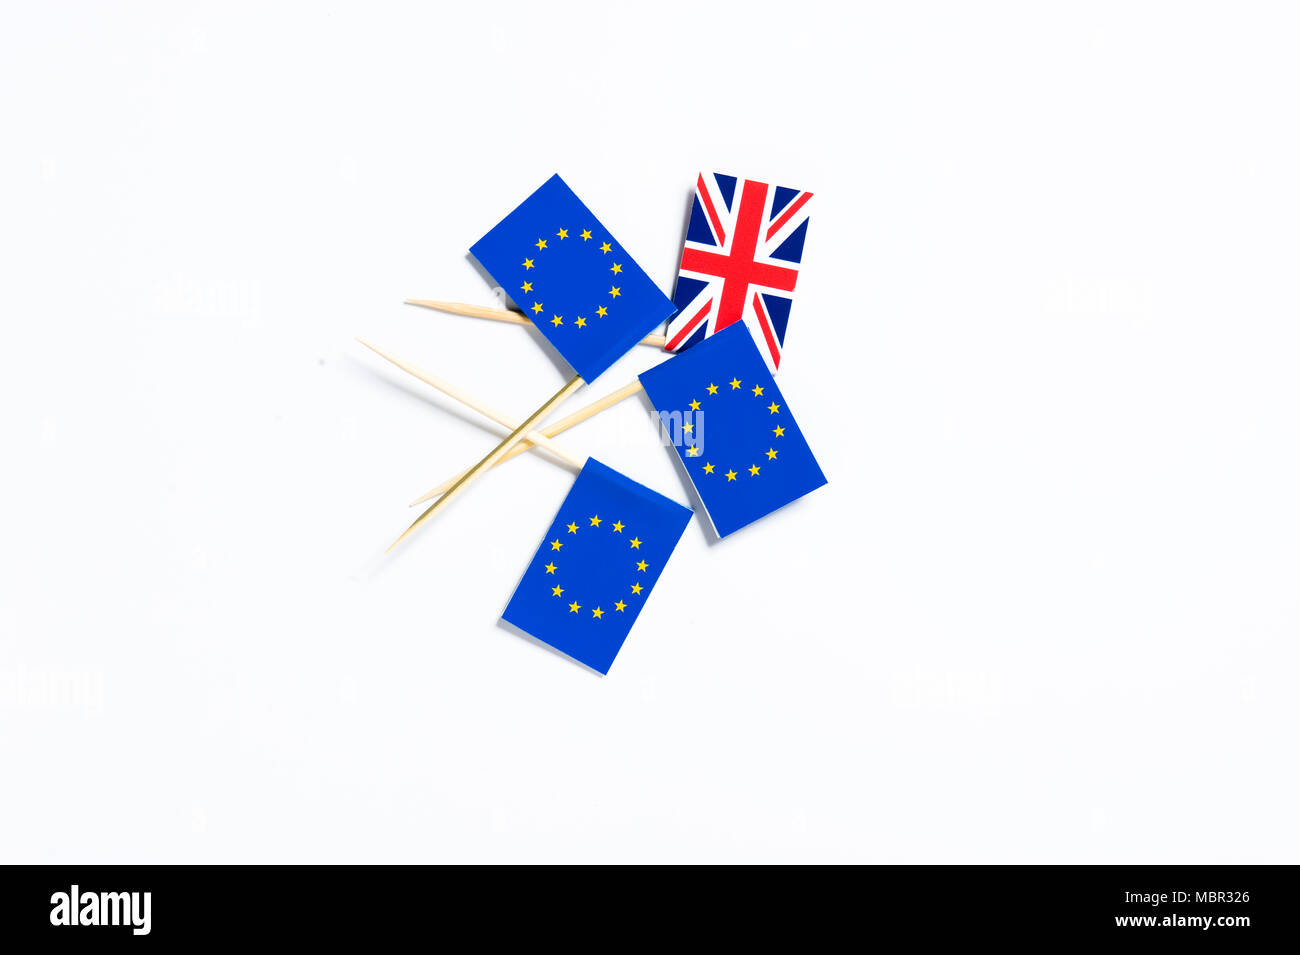 One Union Jack flag and three European Union flags on a white background - Stock Image